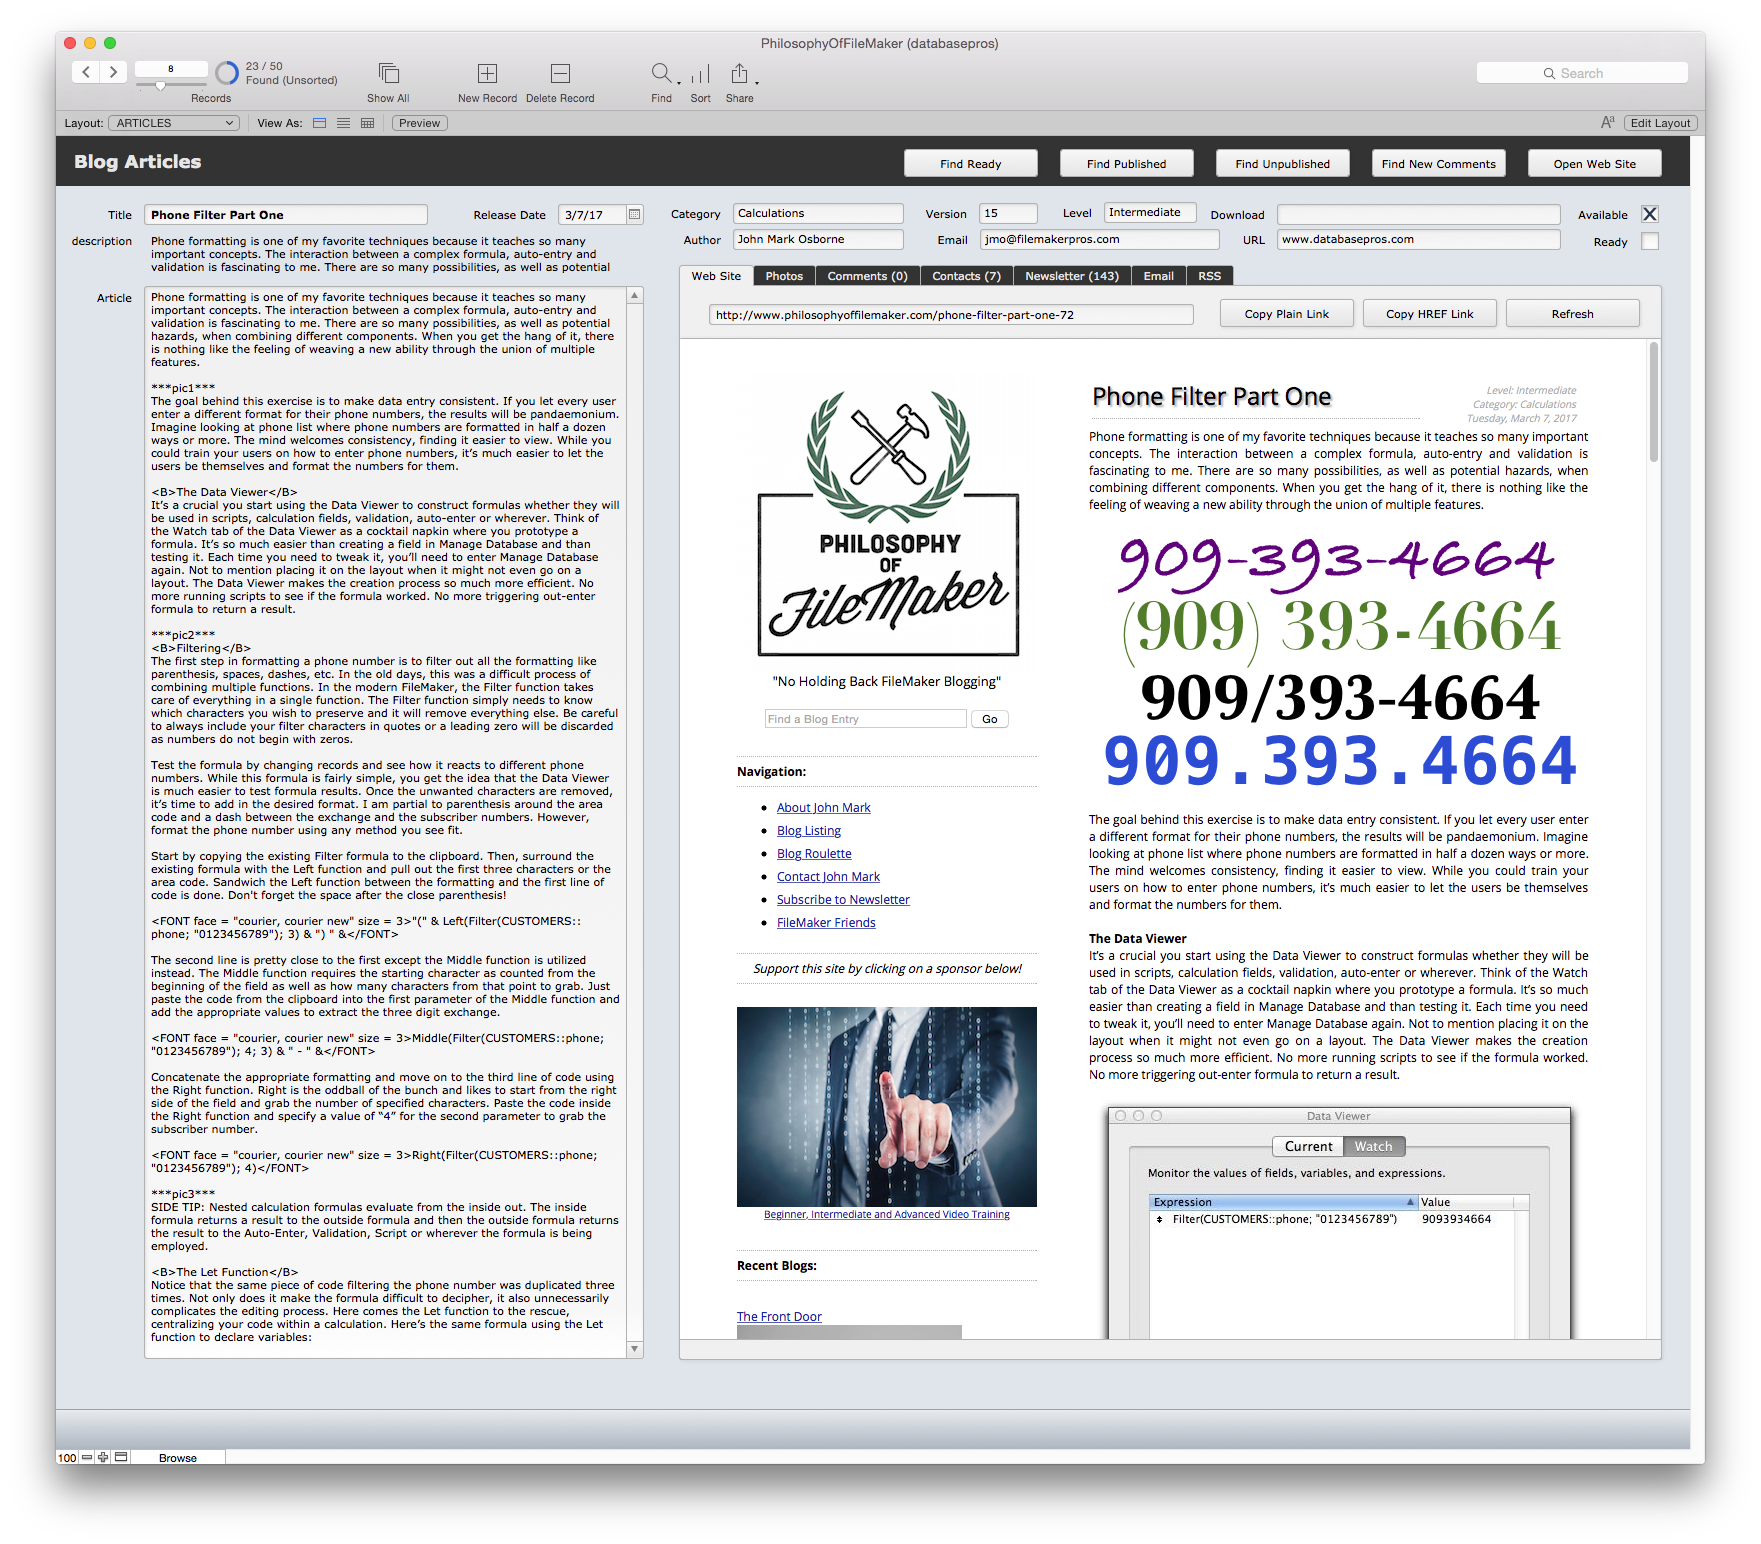 Article development is done directly in FileMaker with a text field and a